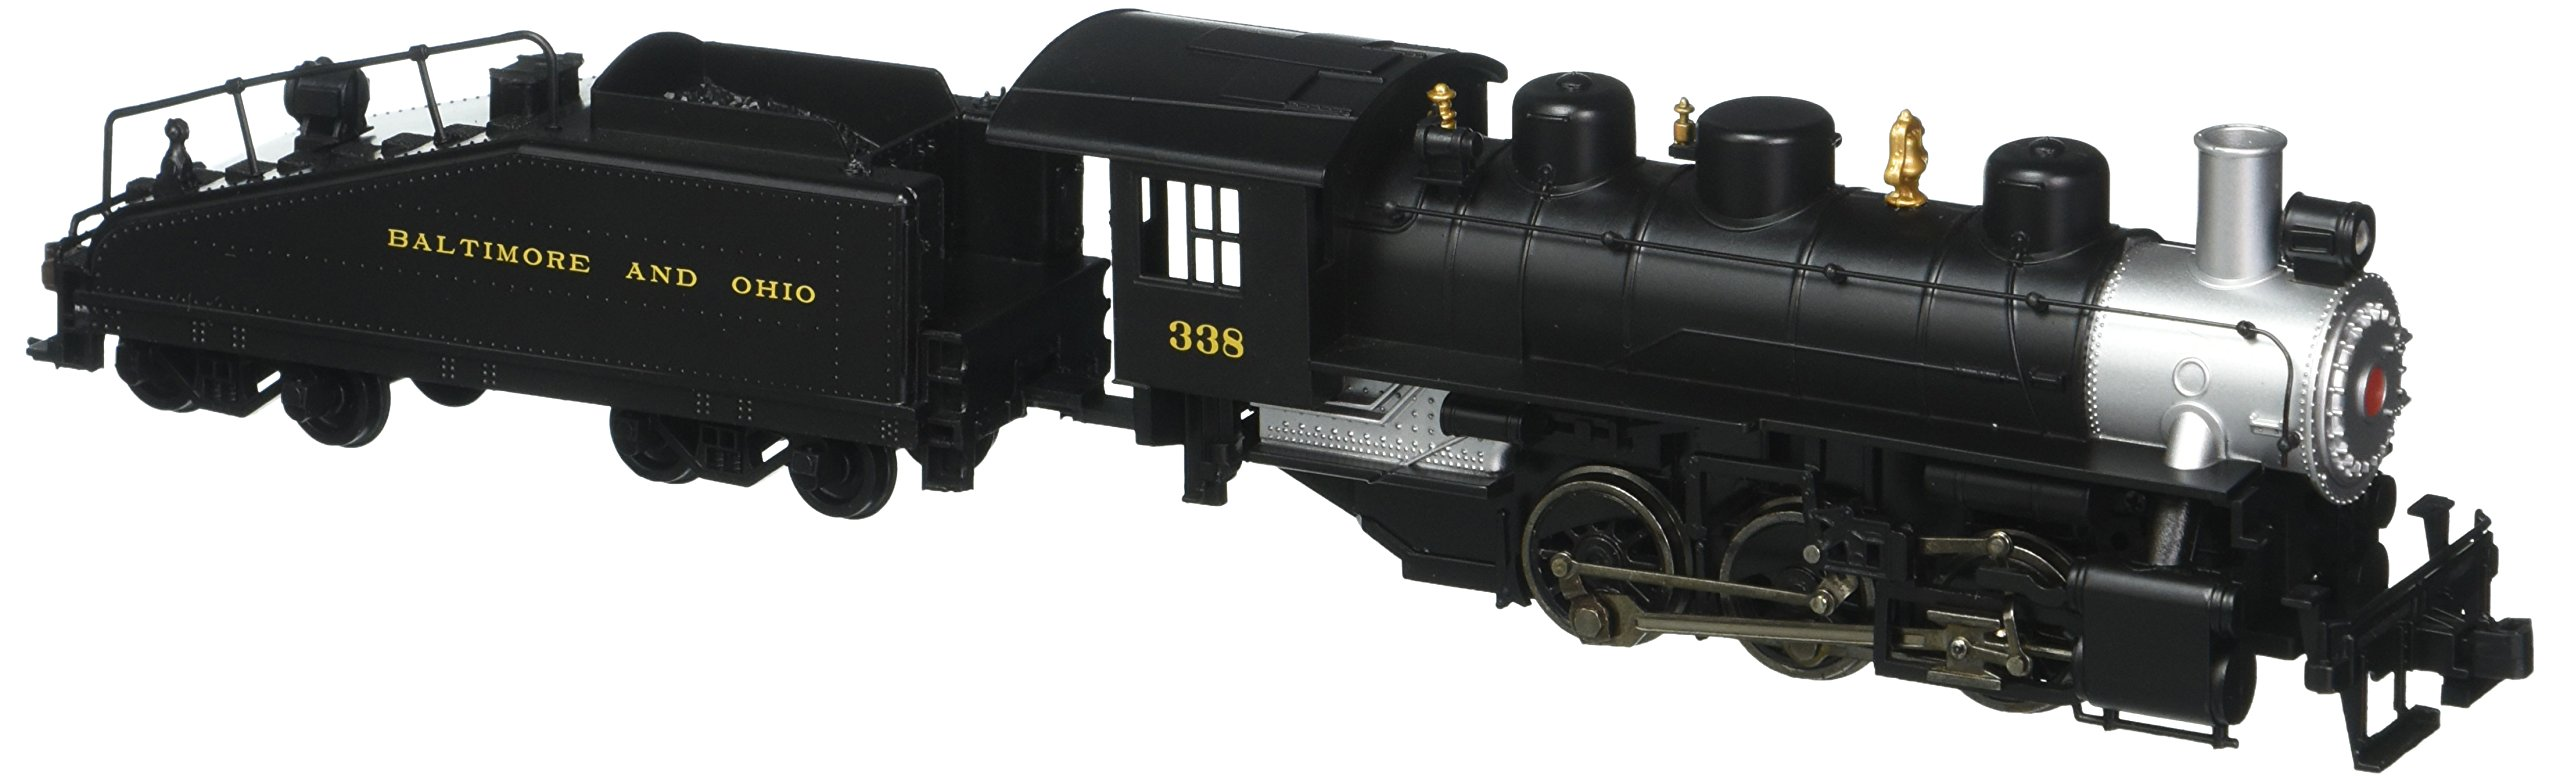 Bachmann Trains Usra 0-6-0 with Smoke and Slope Tender - B and O by Bachmann Trains